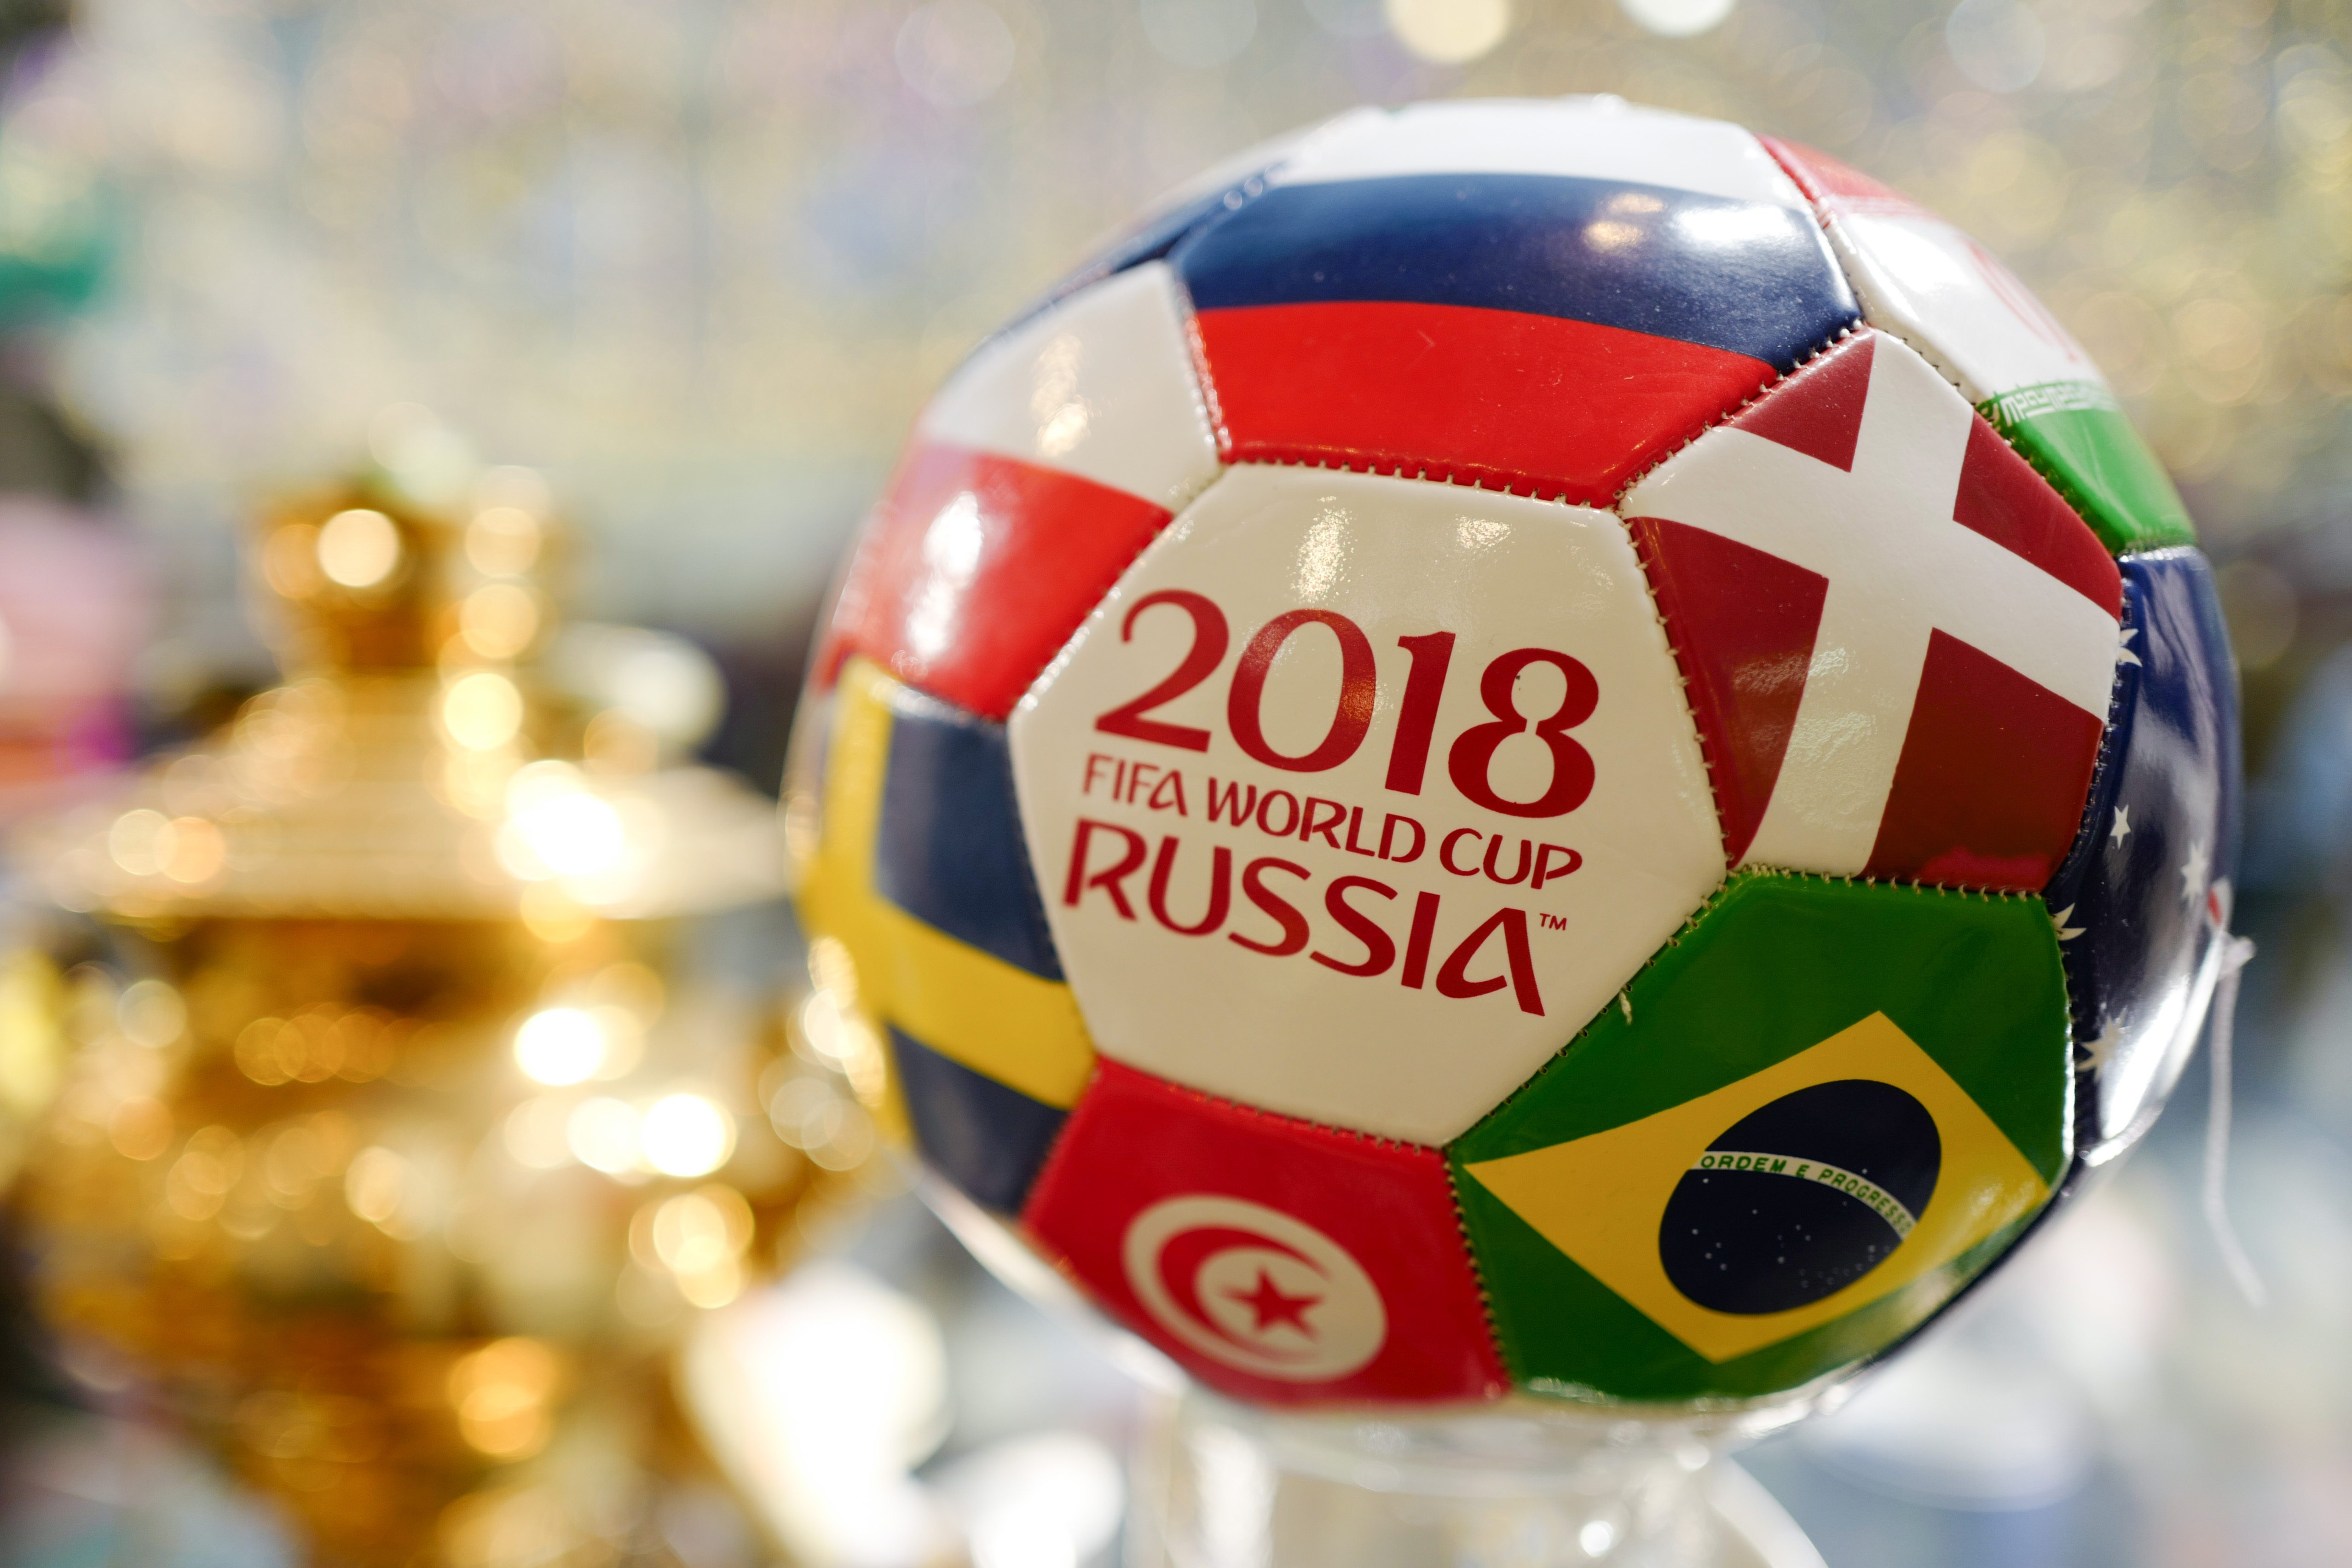 World cup soccer  schedule on tv